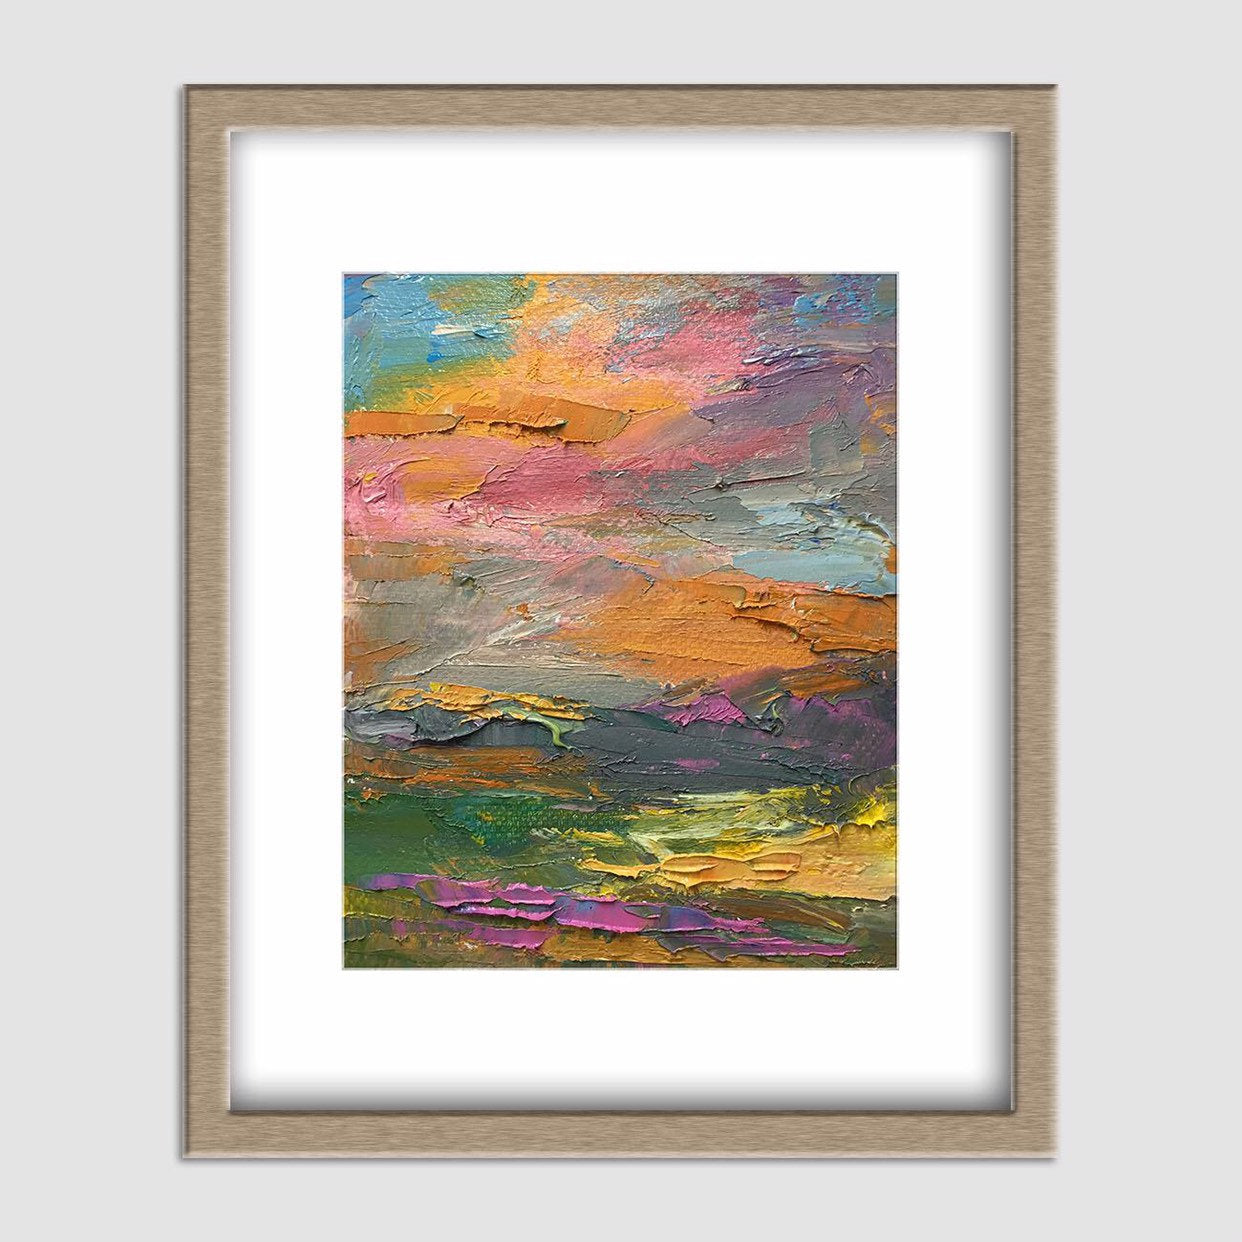 Abstract Canvas Painting, Original Landscape Painting, Original Abstract Art, Bedroom Wall Decor, Abstract Oil Painting, Canvas Wall Art